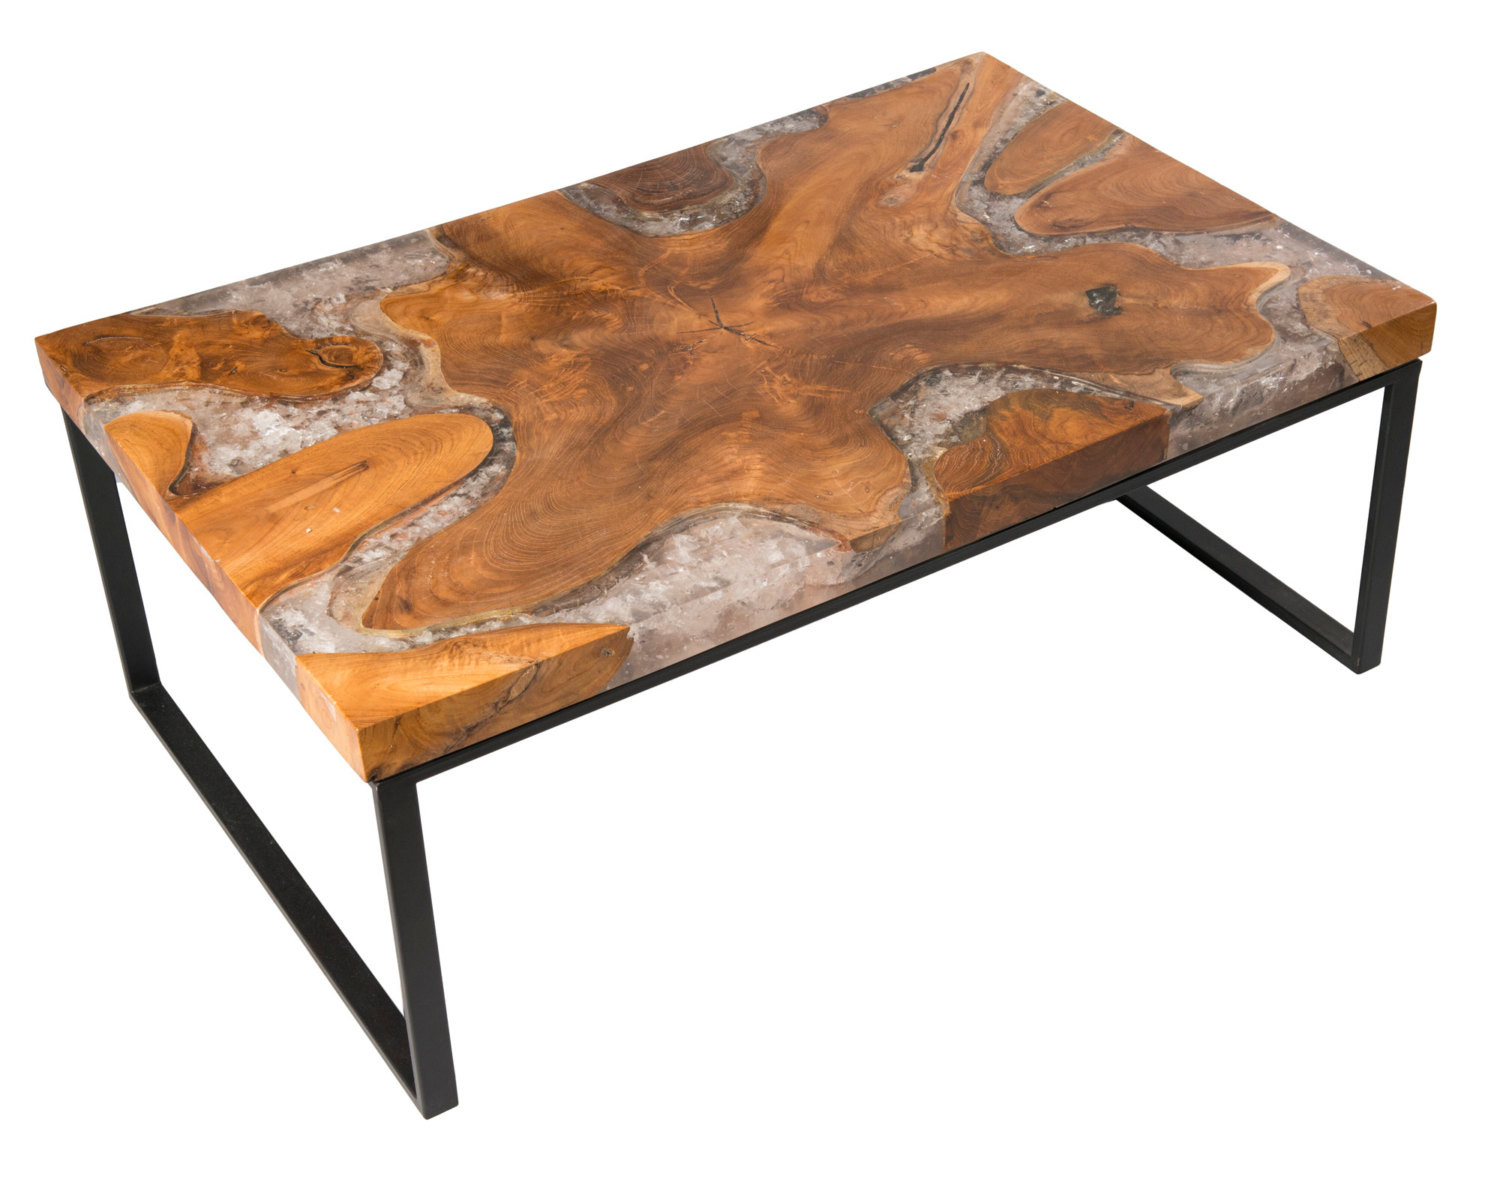 Best ideas about Resin Coffee Table . Save or Pin Teak Root Resin Coffee Table Now.